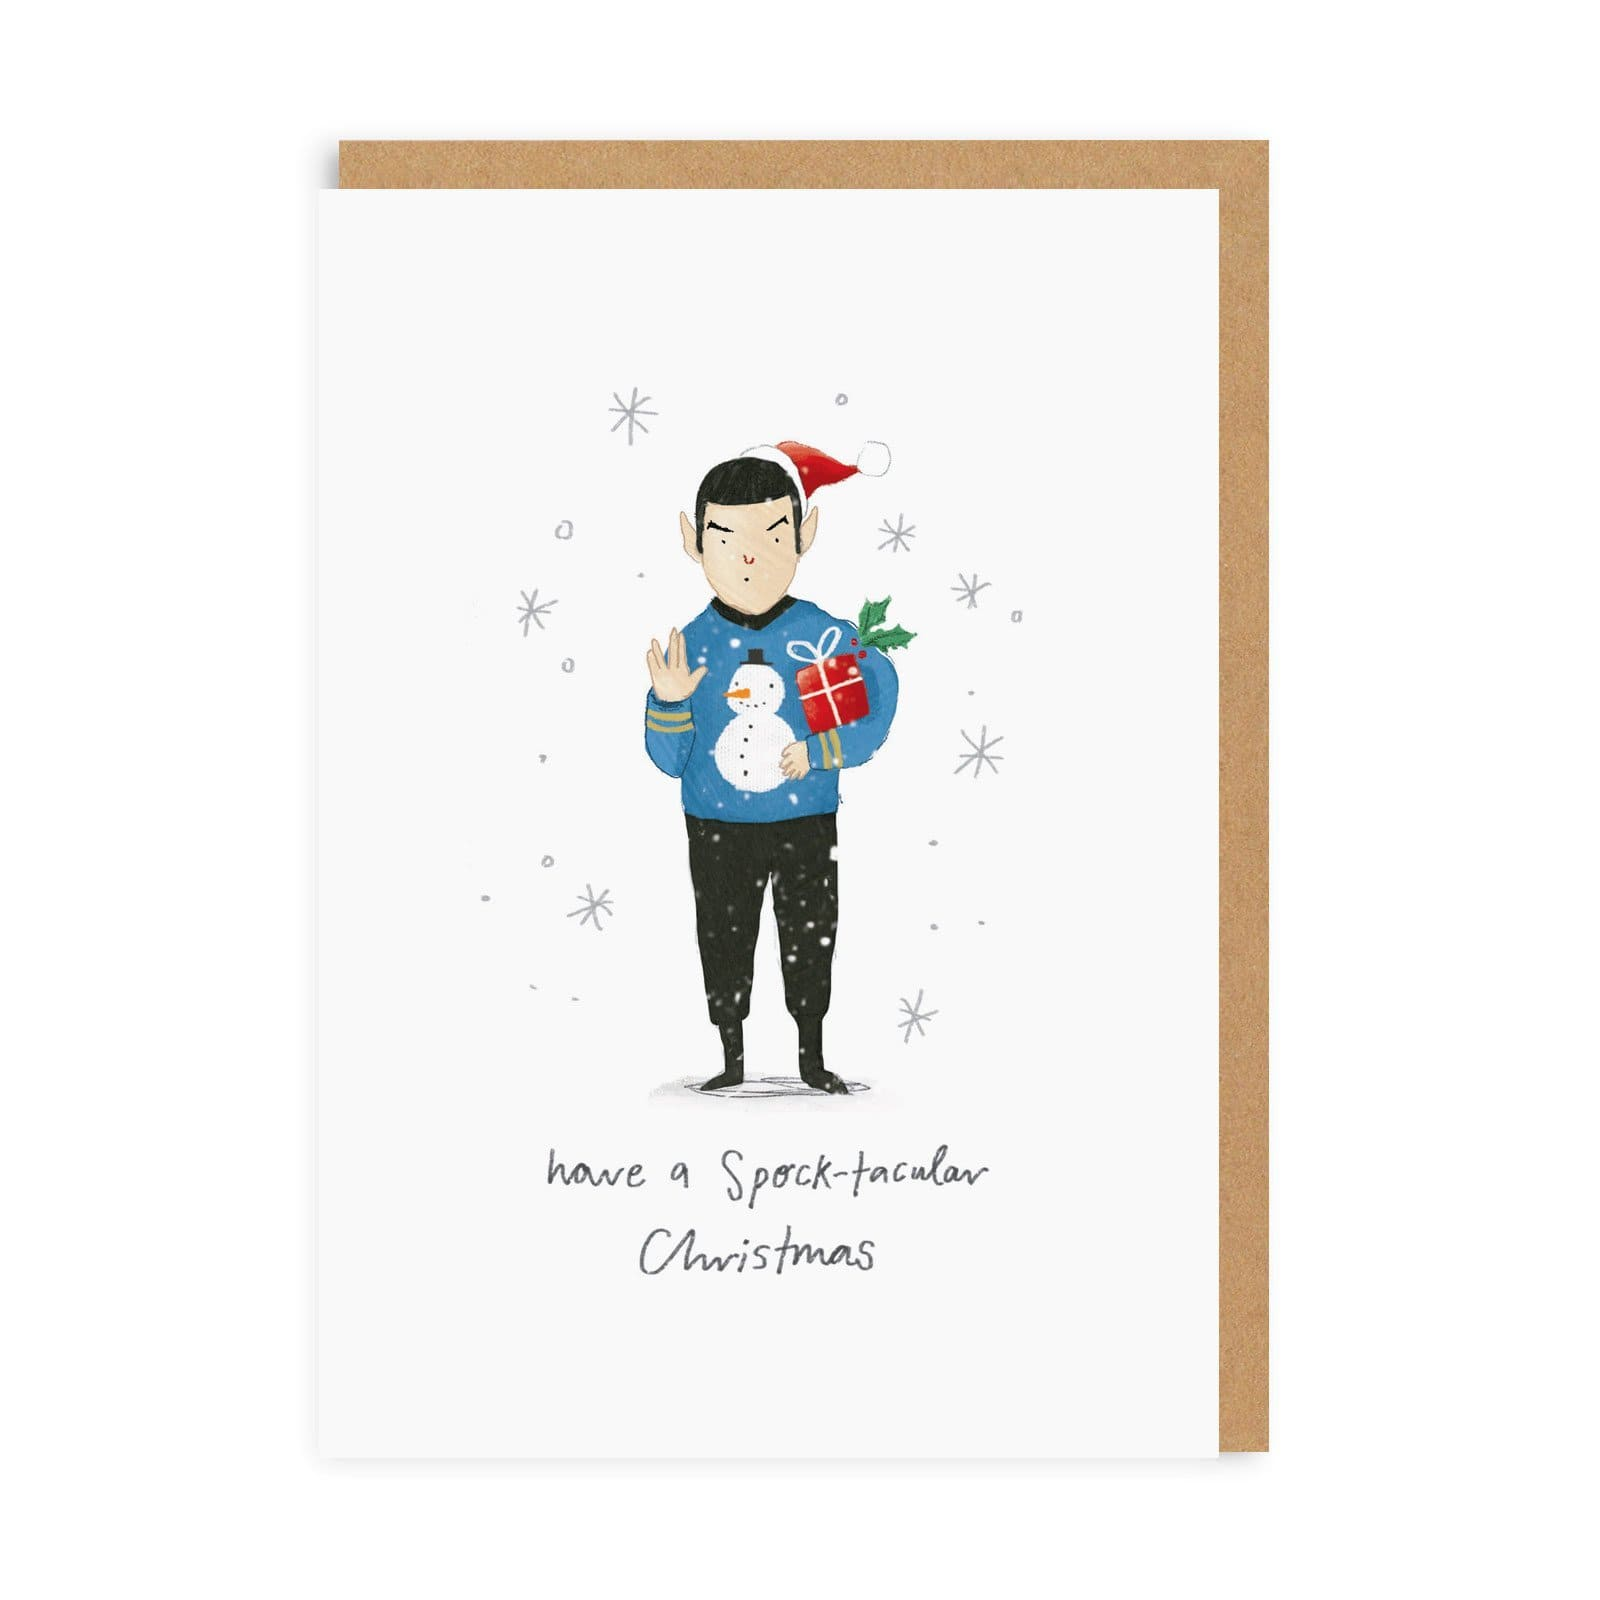 Spock-tacular Christmas Greeting Card